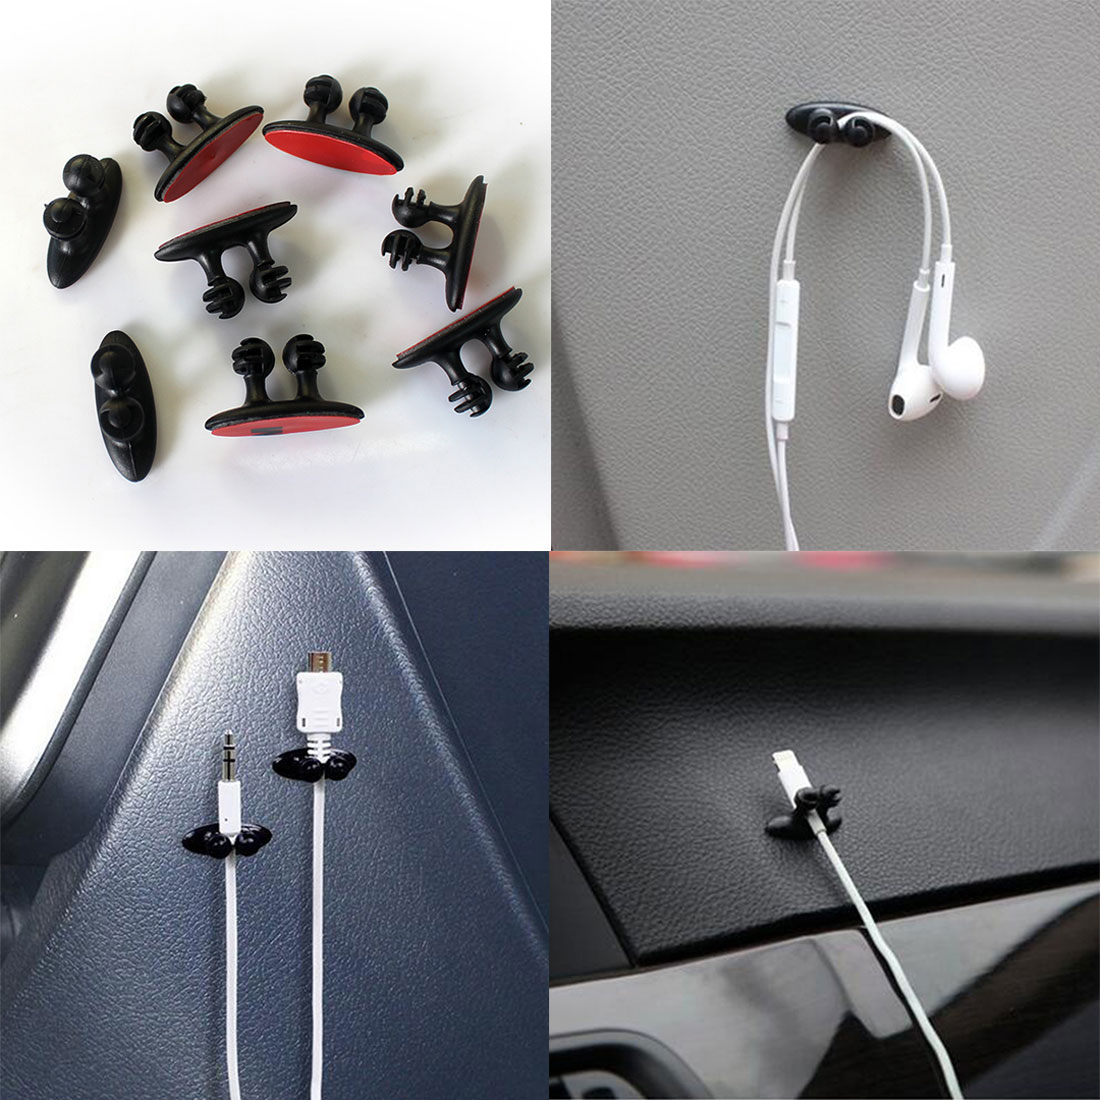 Consumer Electronics Marsnaska 8pcs Wire Cable Holder Multifunctional Tie Clip Fixer Organizer Charger Line Clasp High Quality Headphone Cable Clip